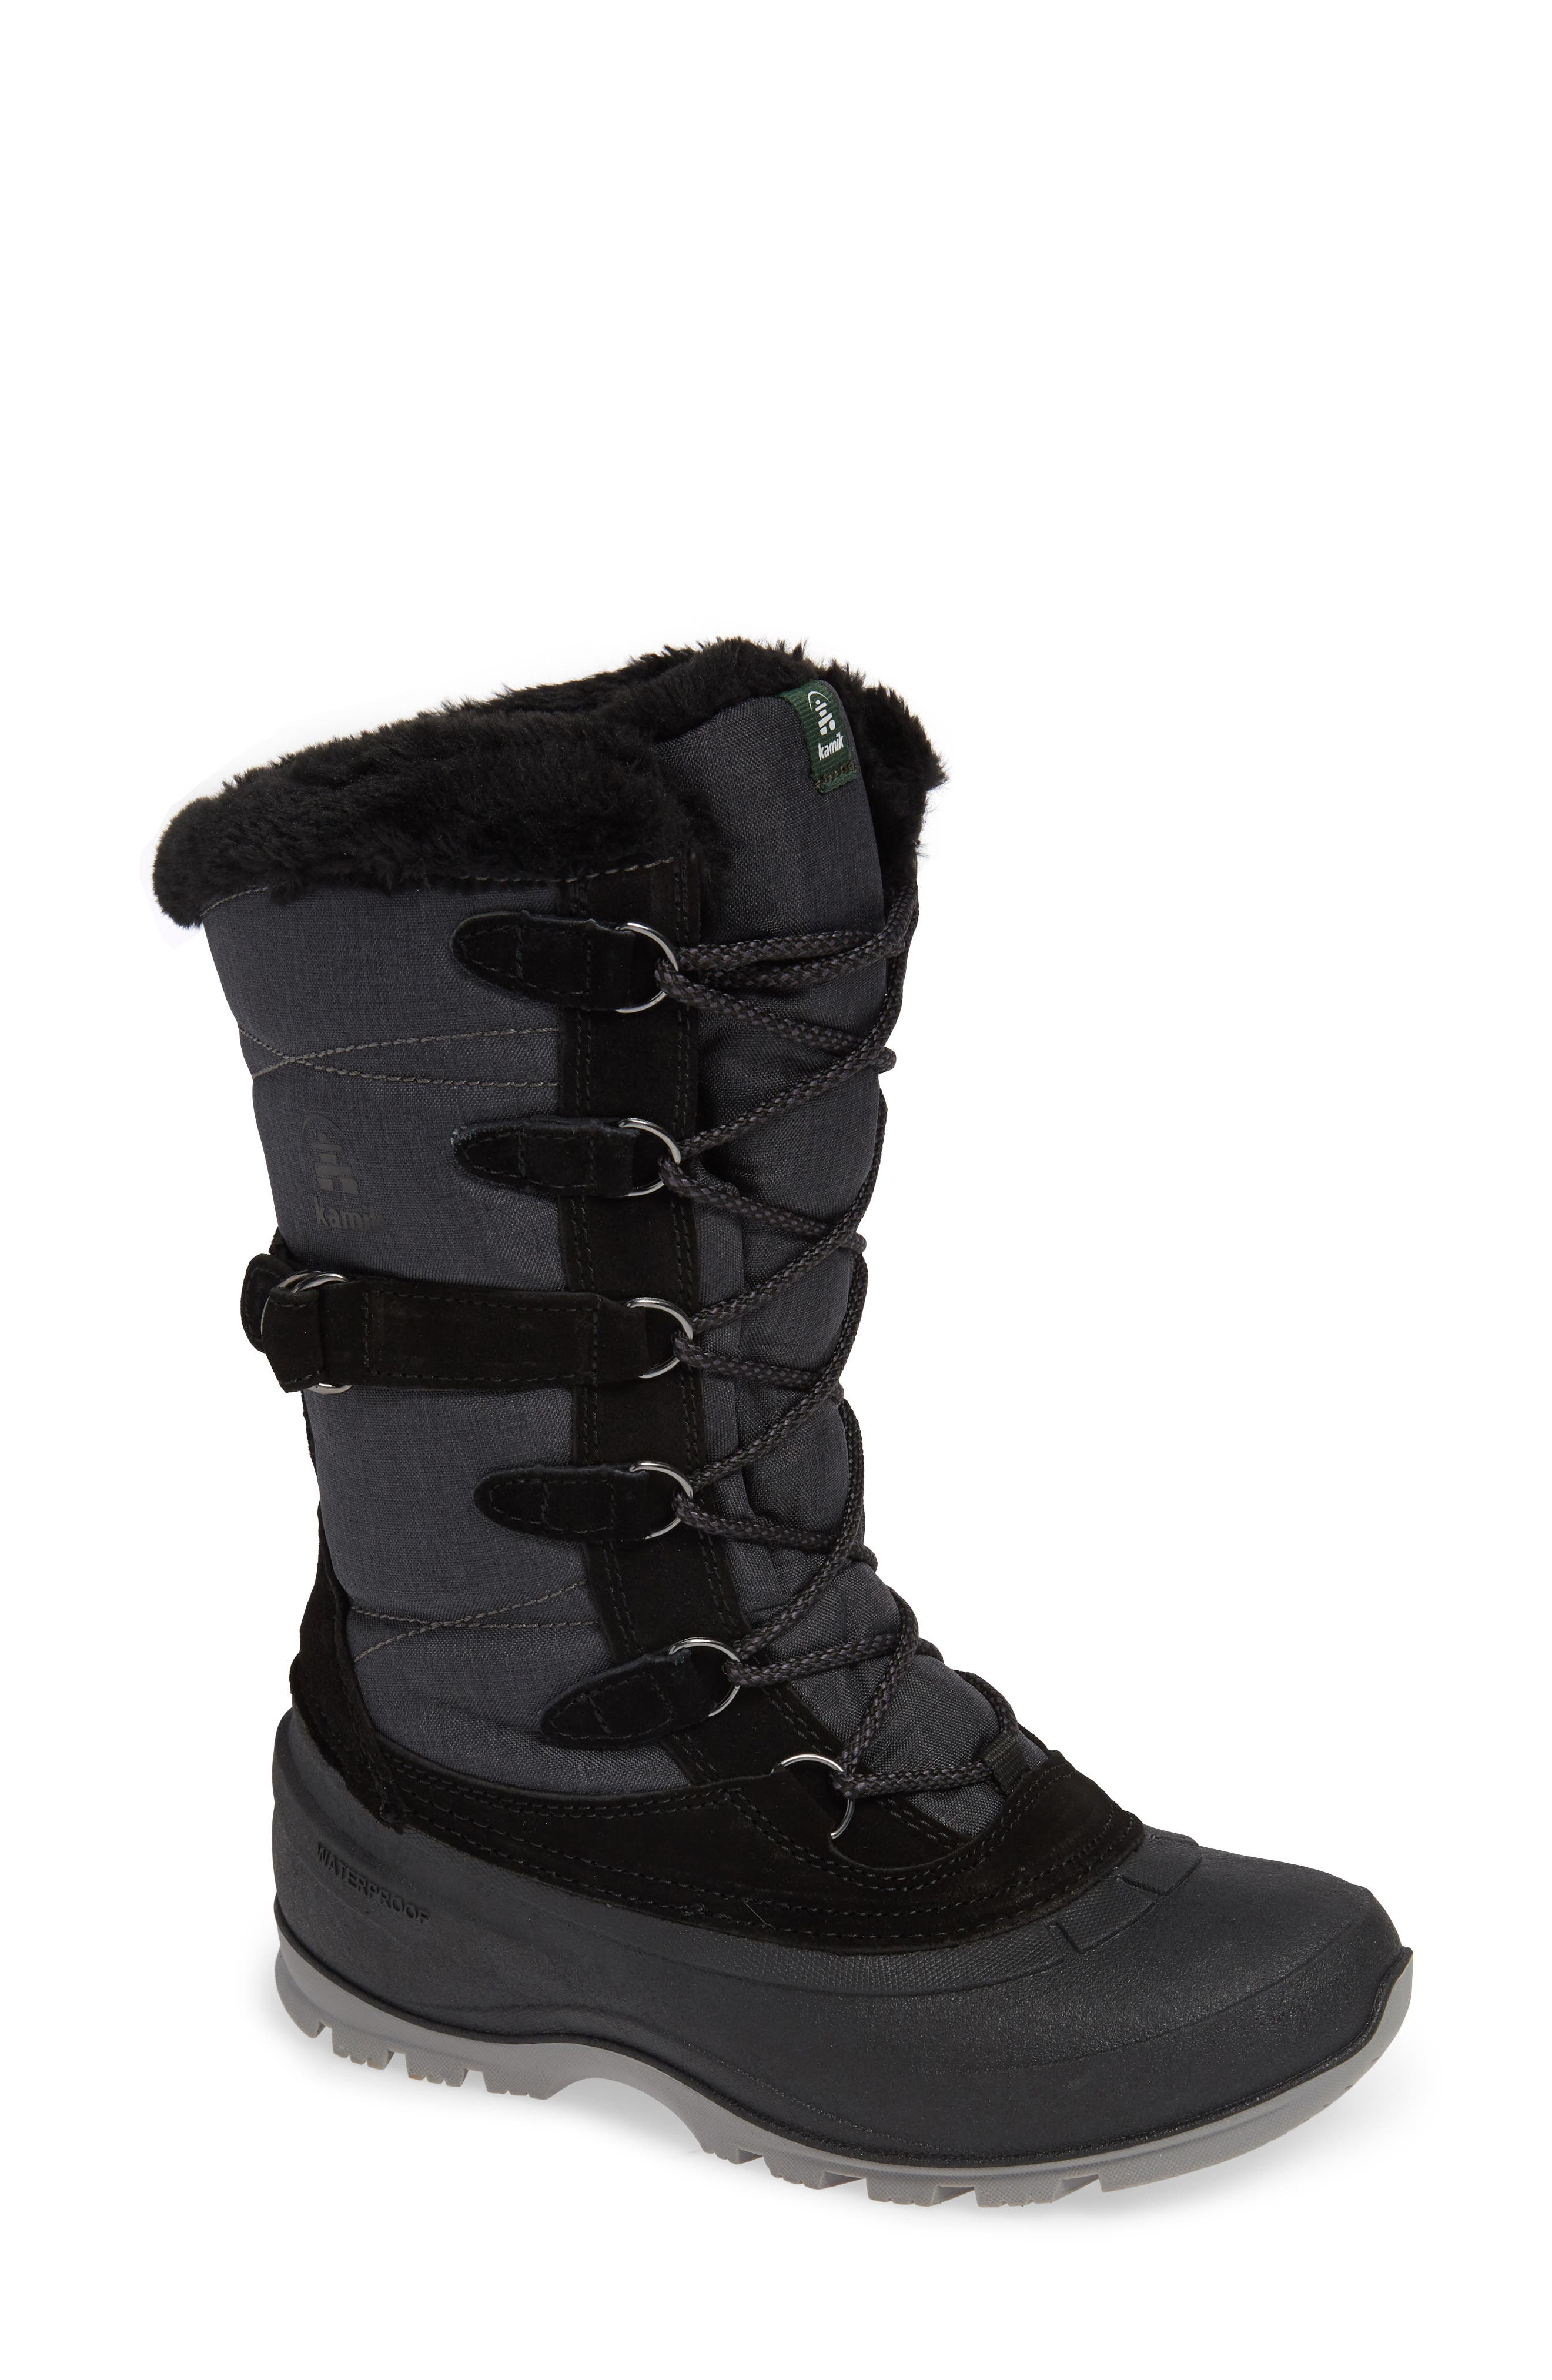 Snovalley2 Waterproof Thinsulate<sup>®</sup>-Insulated Snow Boot, Main, color, BLACK